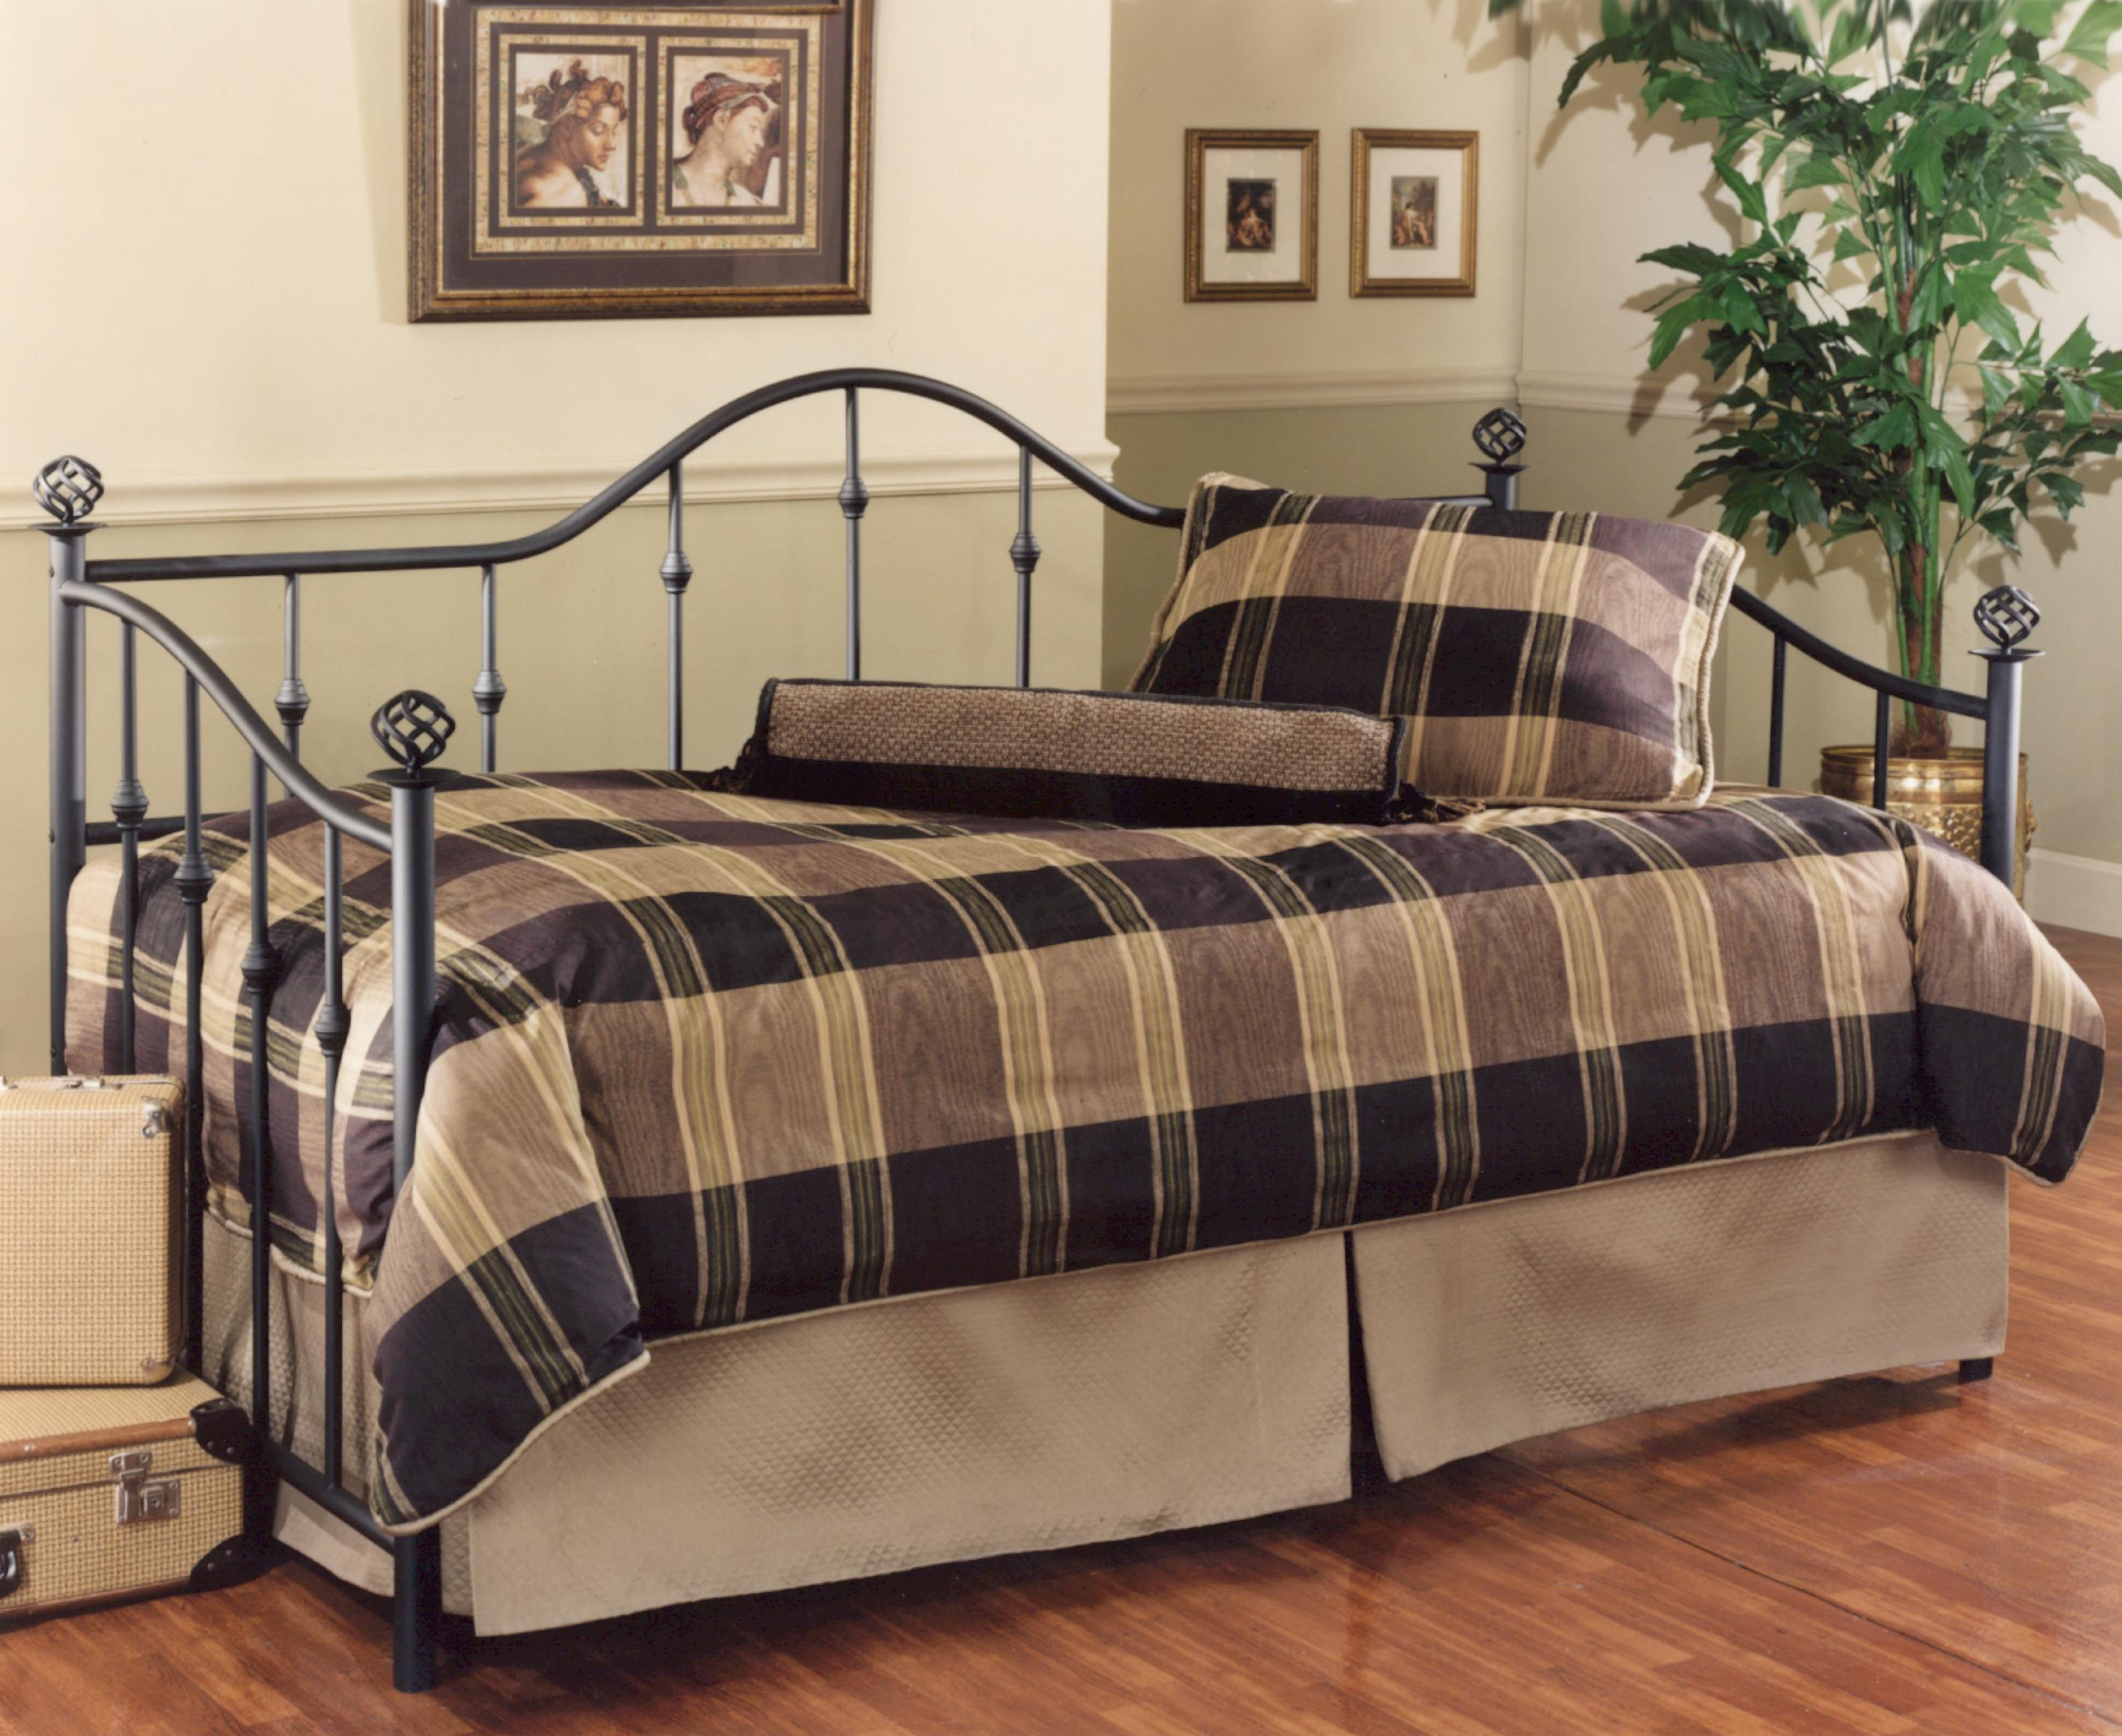 Hillsdale Daybeds Twin Chalet Daybed - Item Number: 11177DBLH